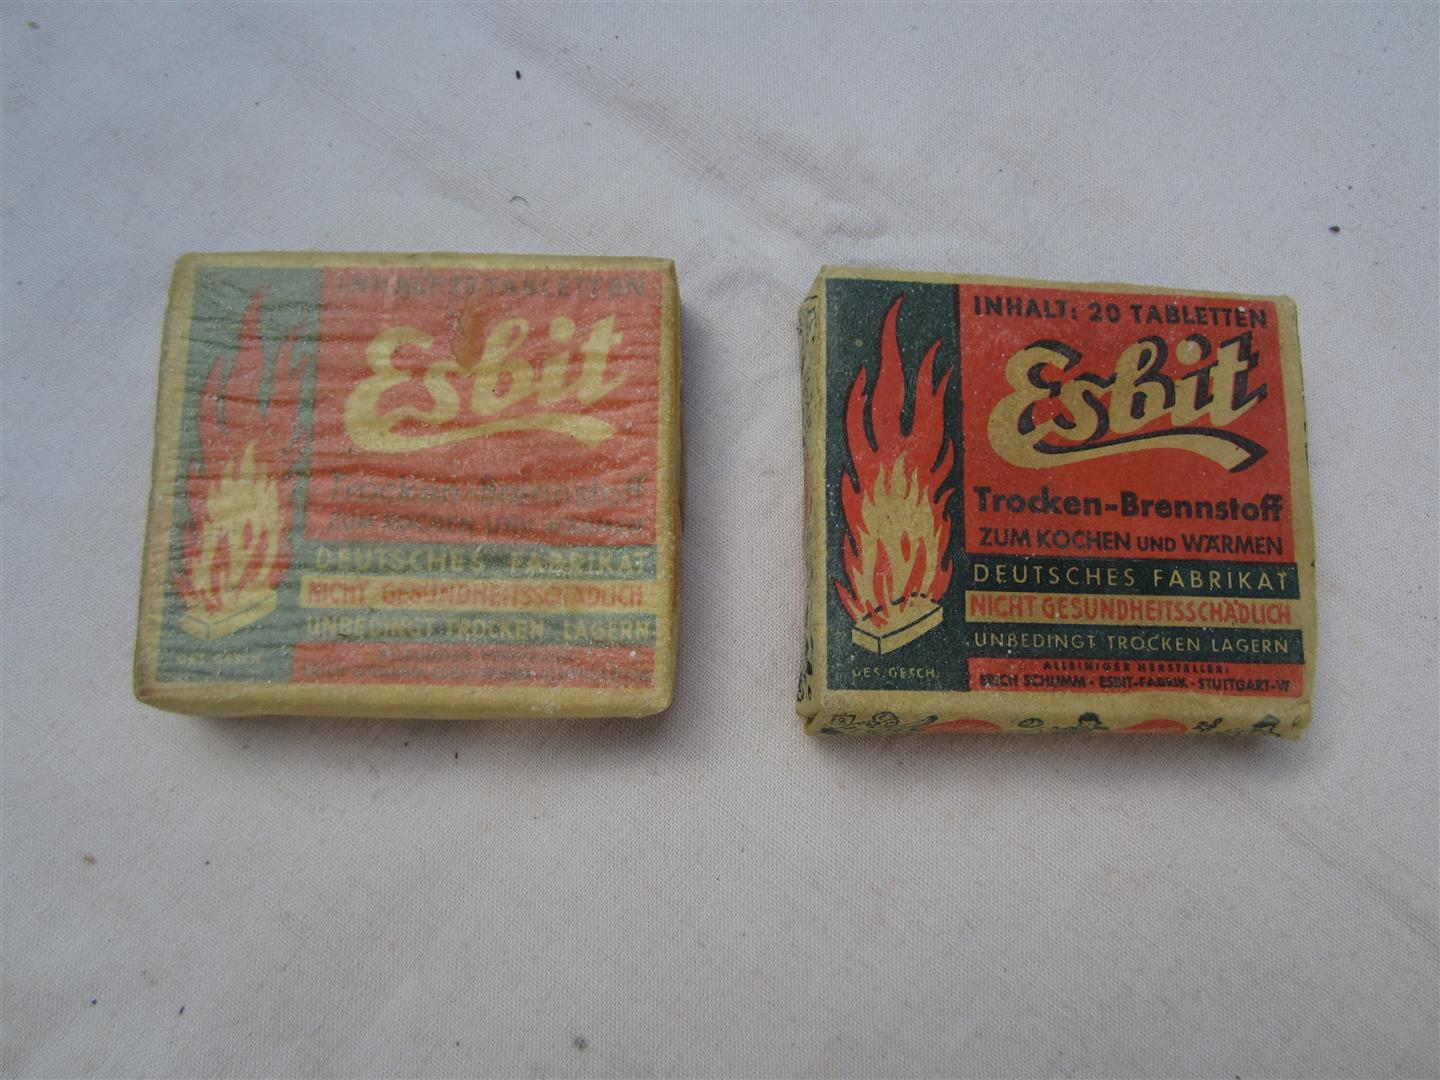 WW2 German Esbit Hexamine Tablets